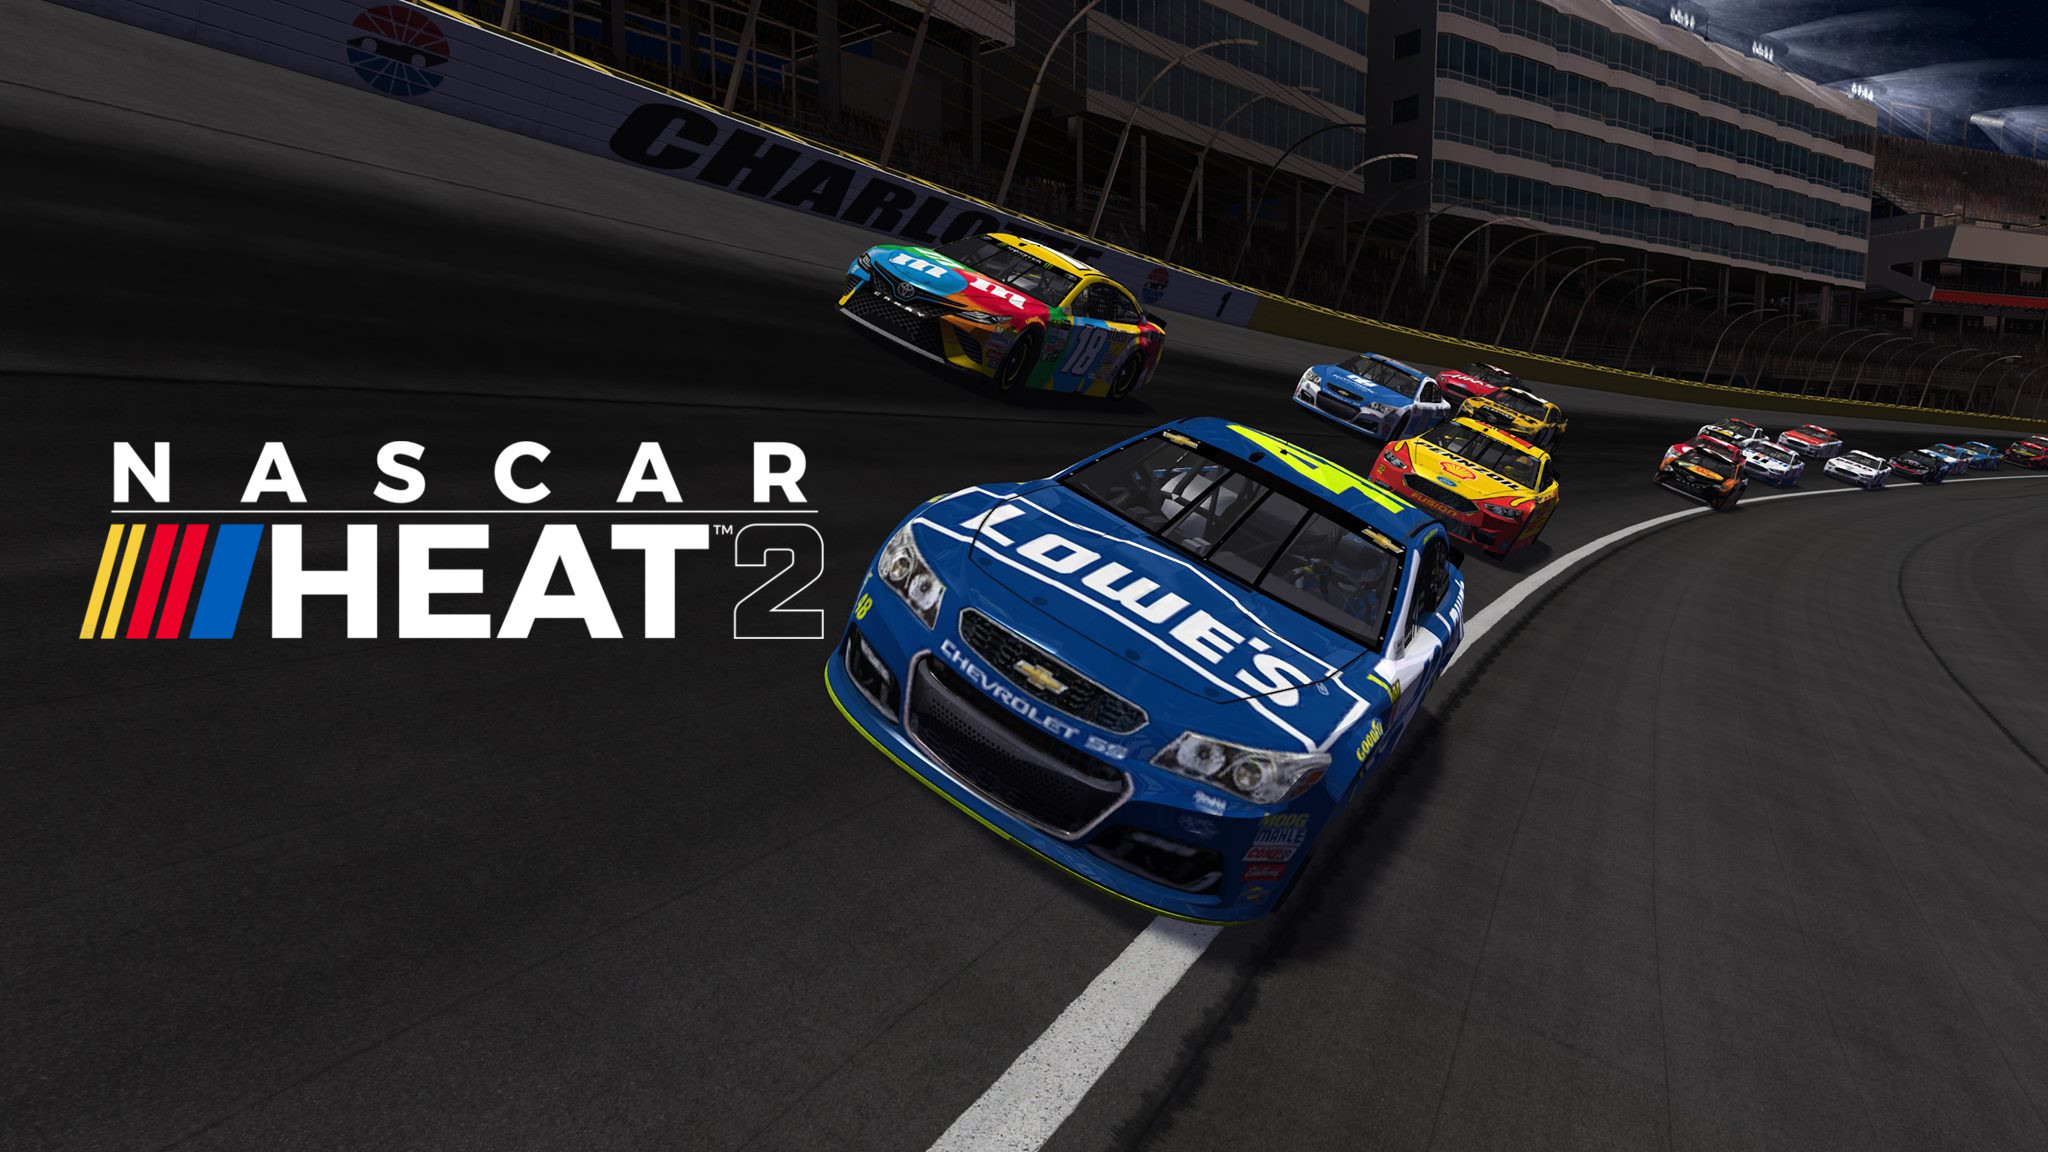 nascar heat, nascar heat 2, racing video game, racing game, xbox racing game, ps4 racing game, mobile racing game